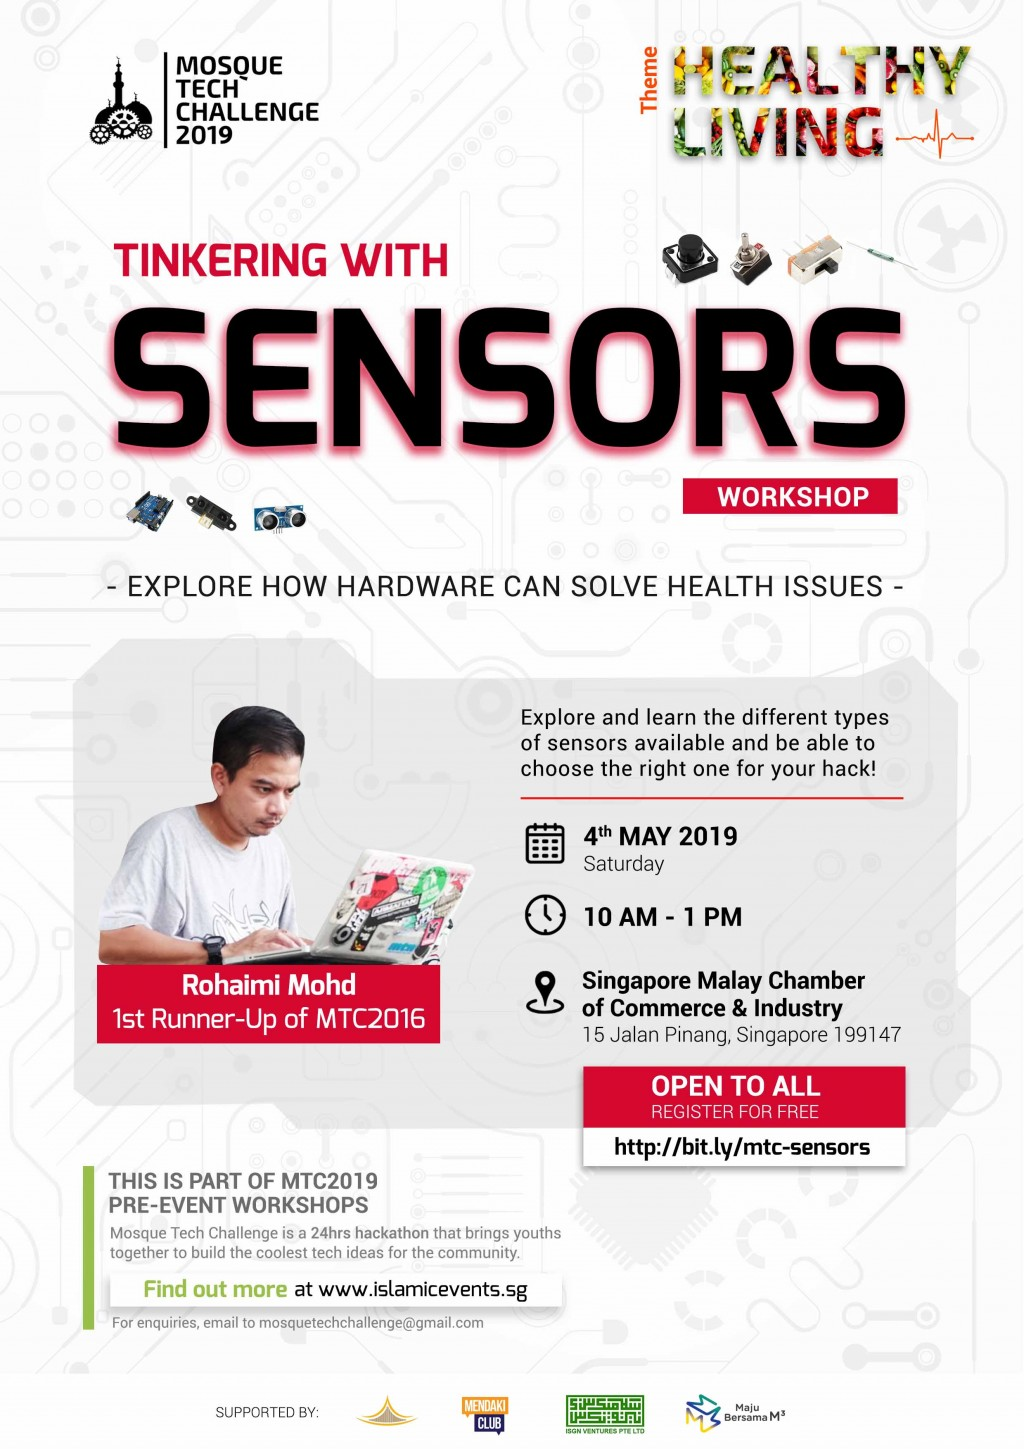 Tinkering with Sensors